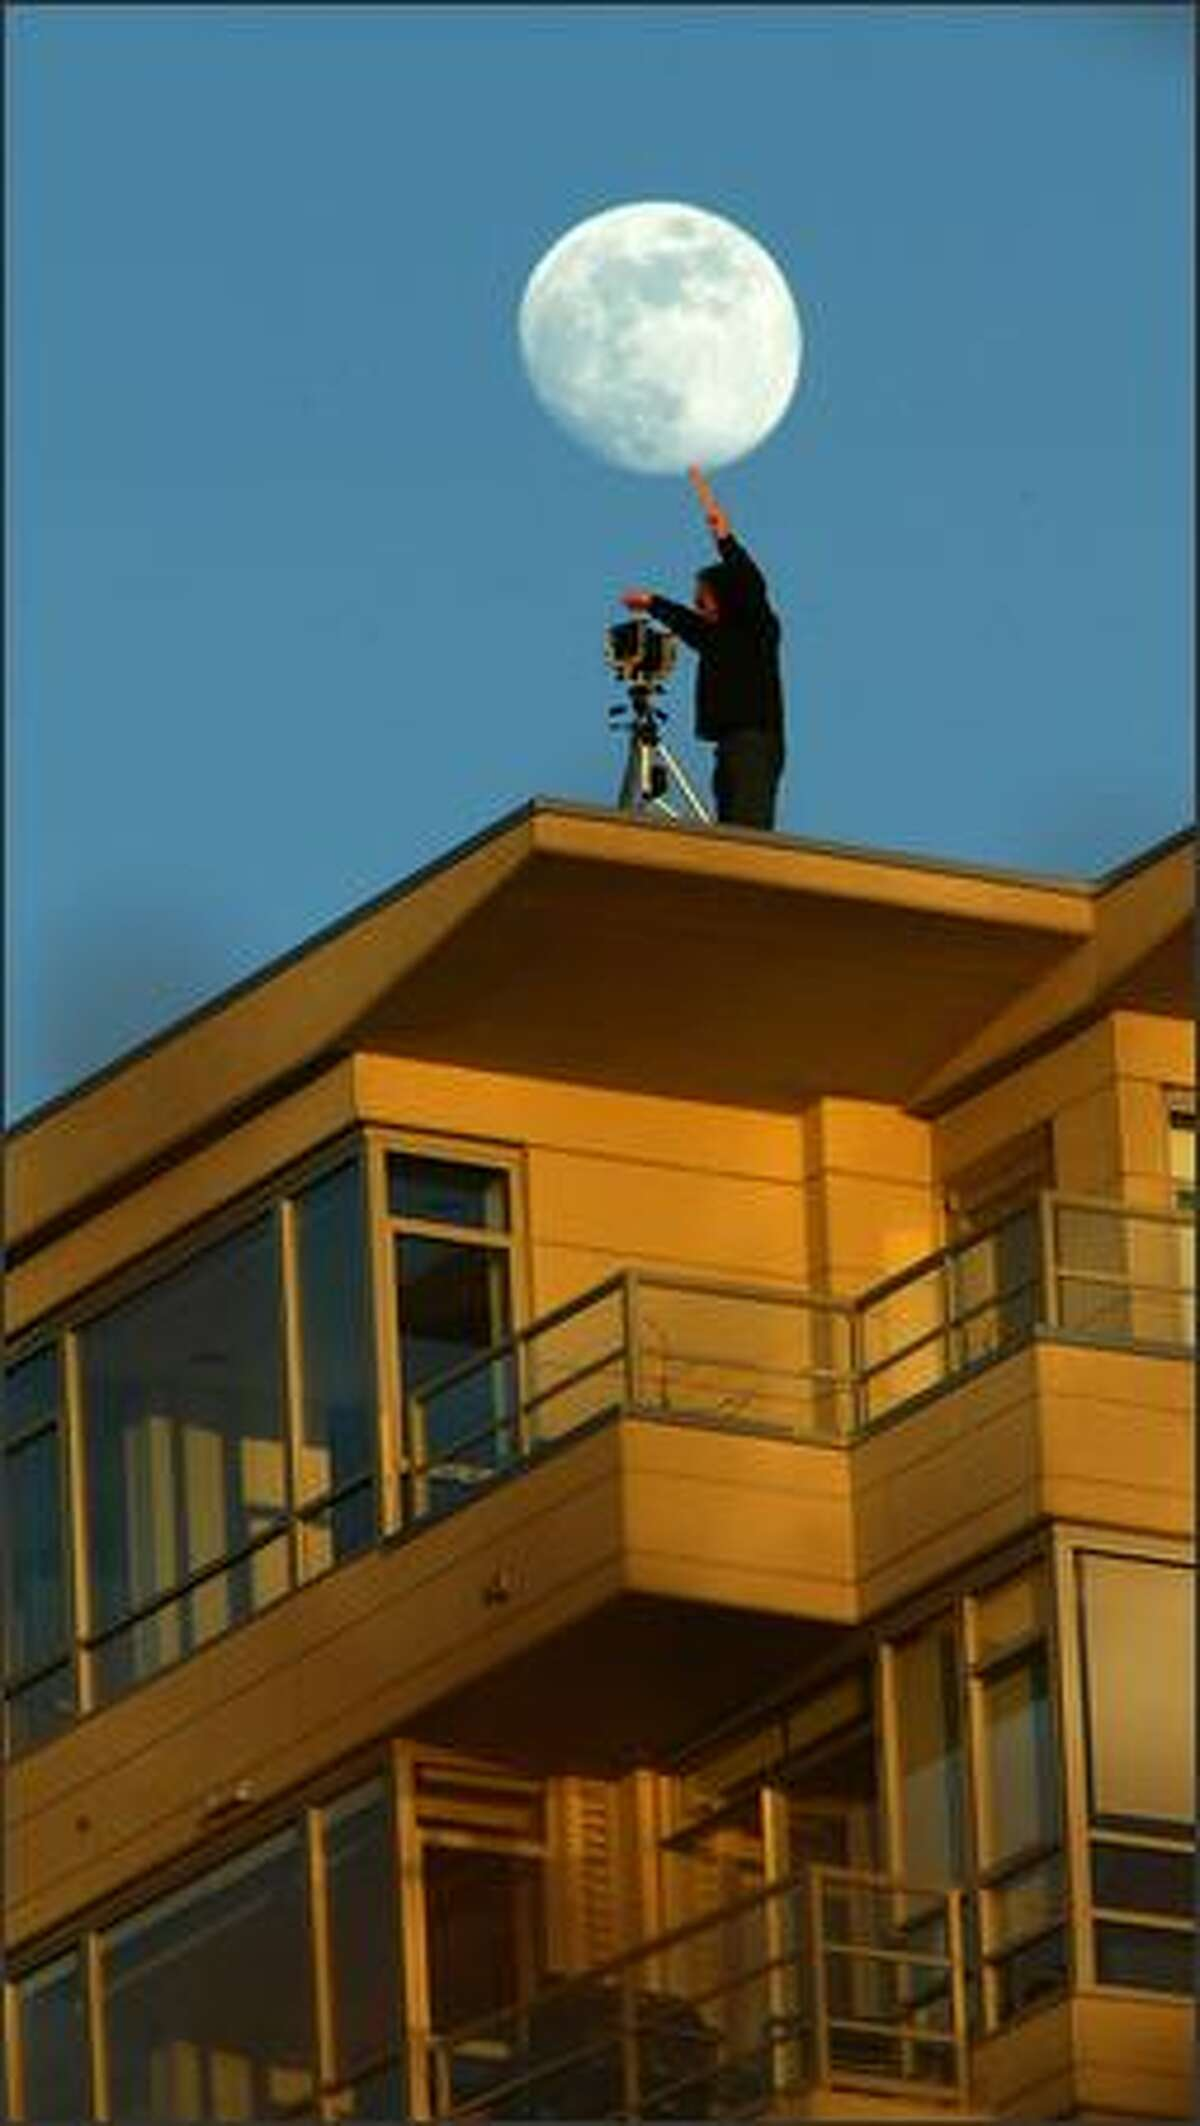 Remember when they told you to shoot with the sun over your shoulder? Well, Dean Wallace turned the old piece of advice around Tuesday at sunset. The moon rises behind Wallace, a commercial photographer, as he uses a film box to shade his lens from the setting sun. Wallace, using a 4x5 camera, is standing on the roof of the 13-story Concord Condominiums to shoot the site of a new building Belltown.